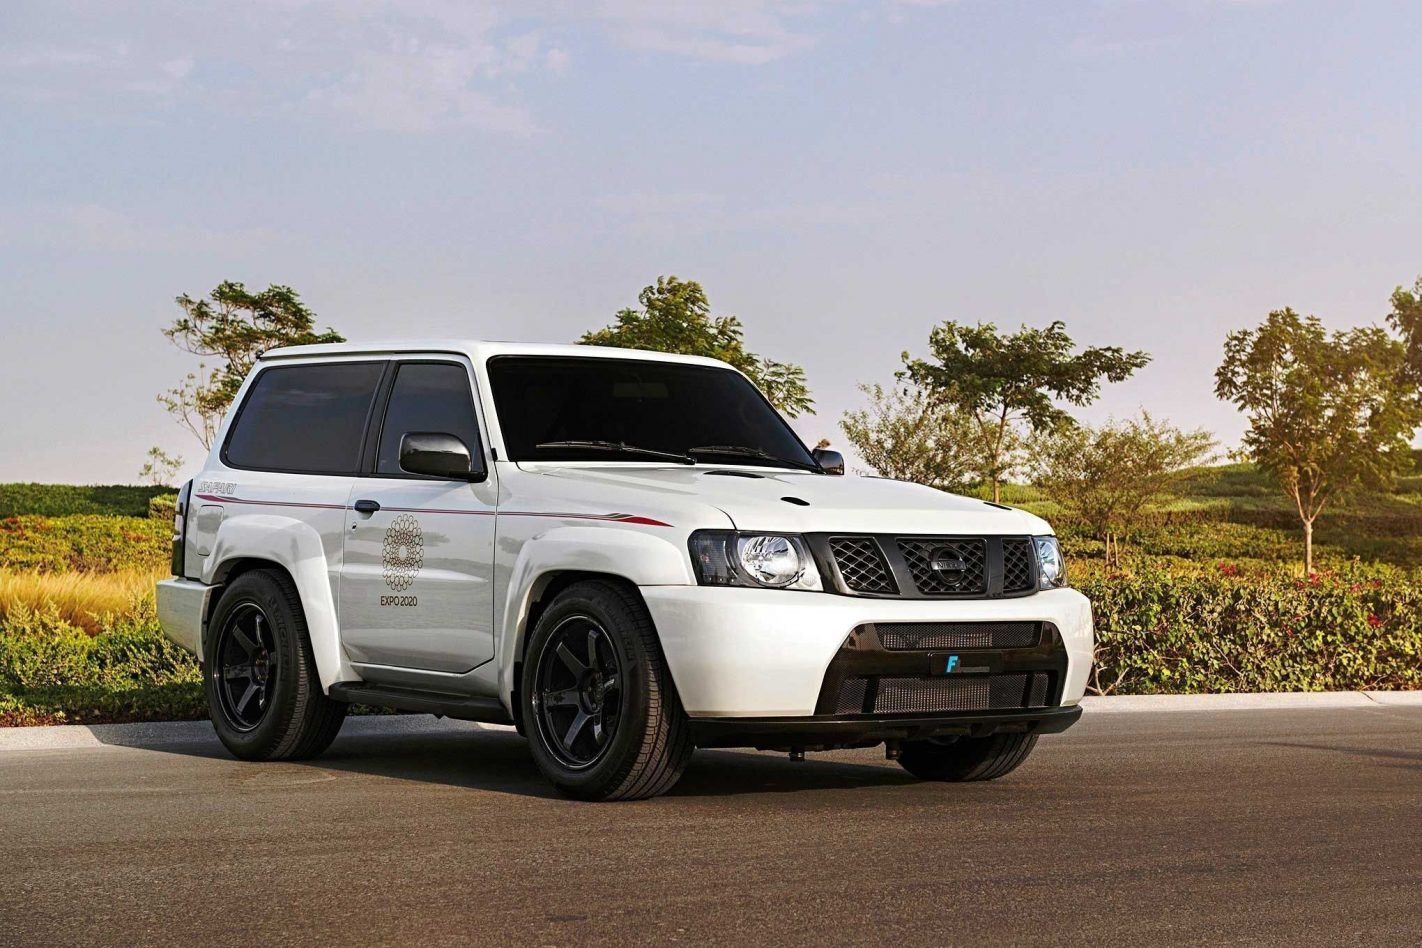 2020 Nissan Patrol Review Release Date Design Engine Price And Photos